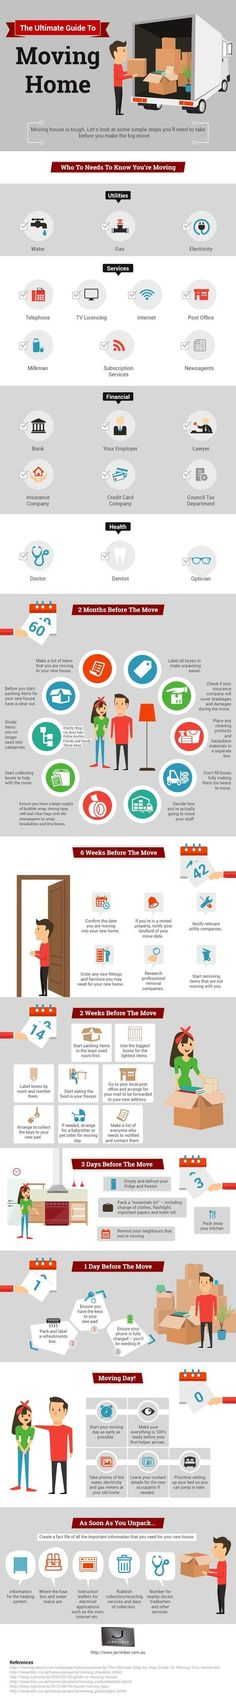 As the infographic below outlines, separating essential items from non-essential items is crucial as it is not realistic to have everything packed away weeks before you move. Keeping a detailed list of what you have packed into every box will make unpacking far less overwhelming. Big Move, Staying Organized, Infographic, Simple, Tips, Infographics, Advice, Organization Ideas, Counseling